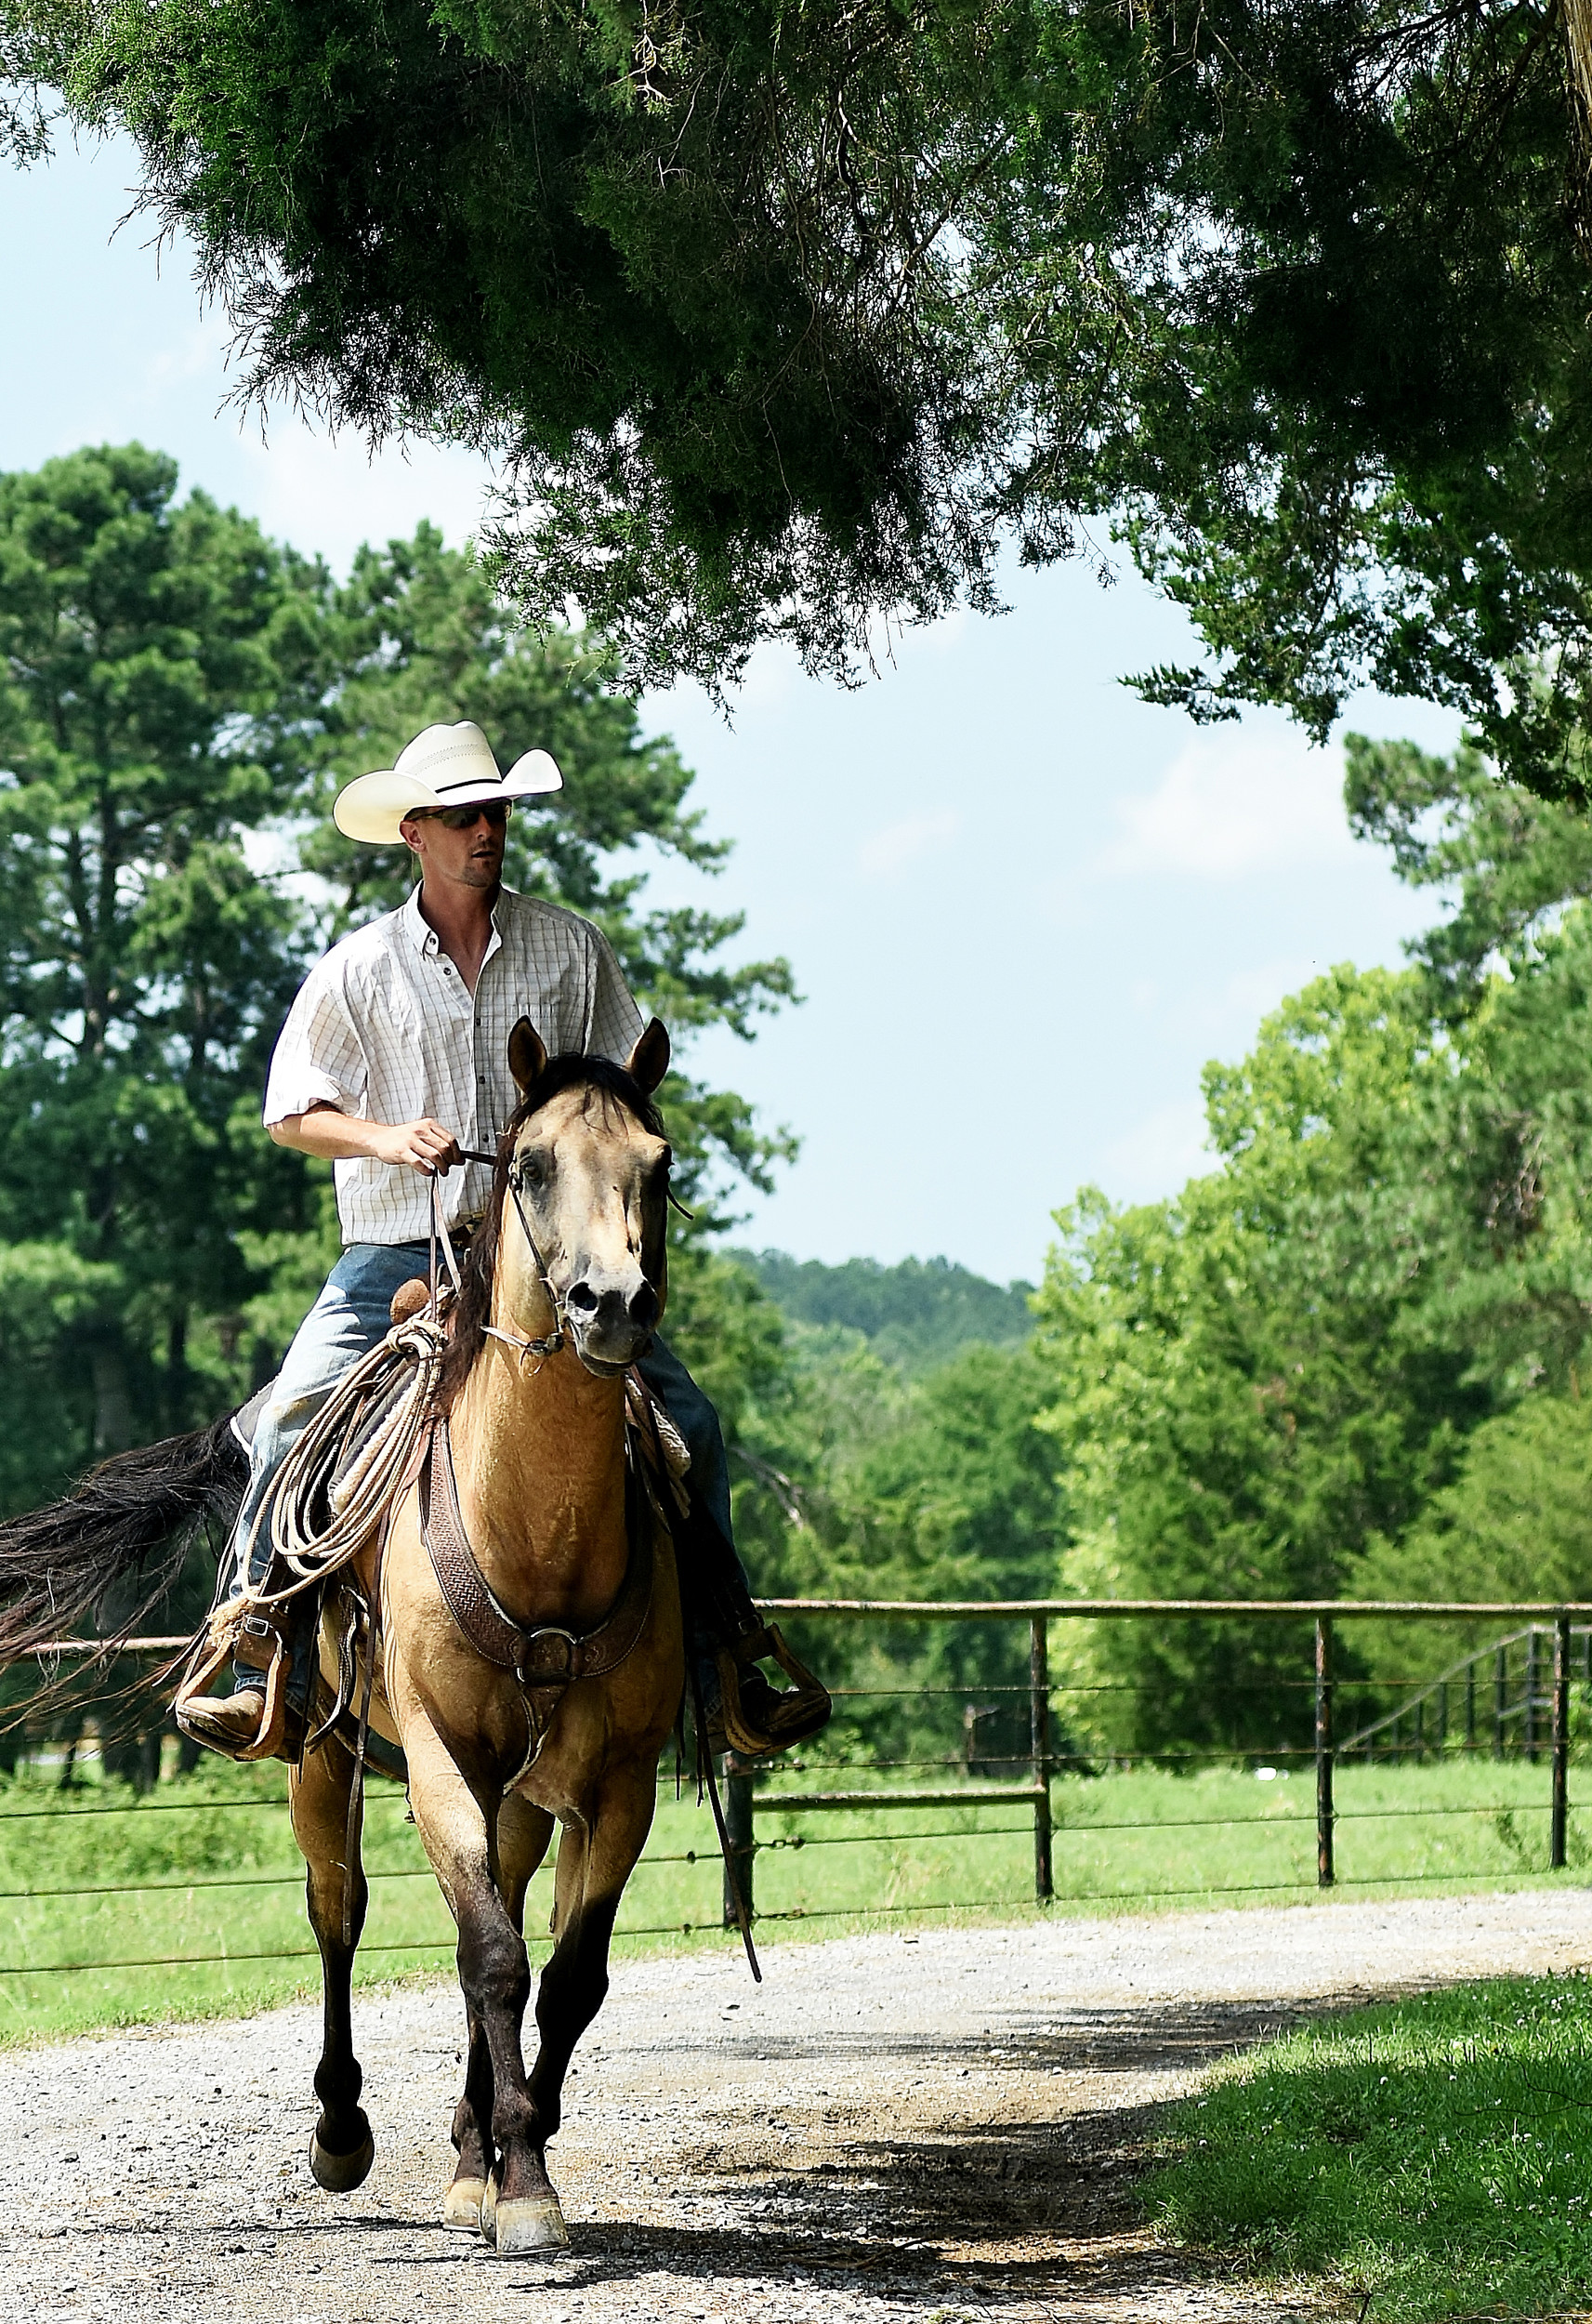 Jonathan Watkins keeps an eye on his farm's activity, from herding cattle to the construction of a new hay barn, on horseback. He was presented the Farm Family of the Year award in June.